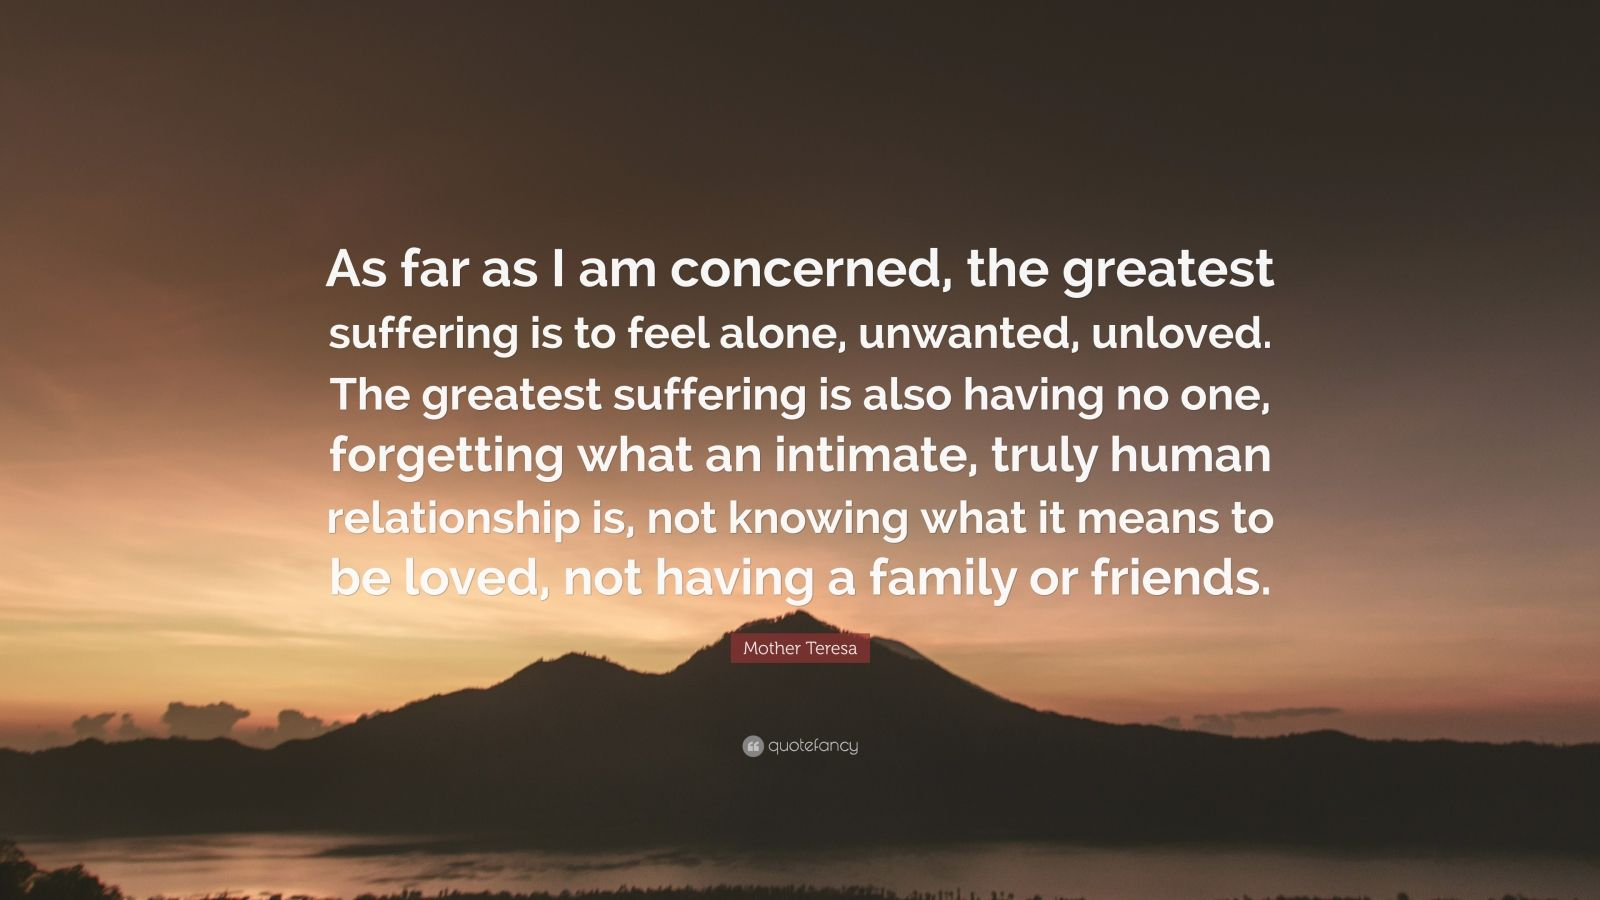 """Mother Teresa Quote: """"As far as I am concerned, the greatest suffering is to feel alone, unwanted, unloved. The greatest suffering is also having no one, forgetting what an intimate, truly human relationship is, not knowing what it means to be loved, not having a family or friends."""""""